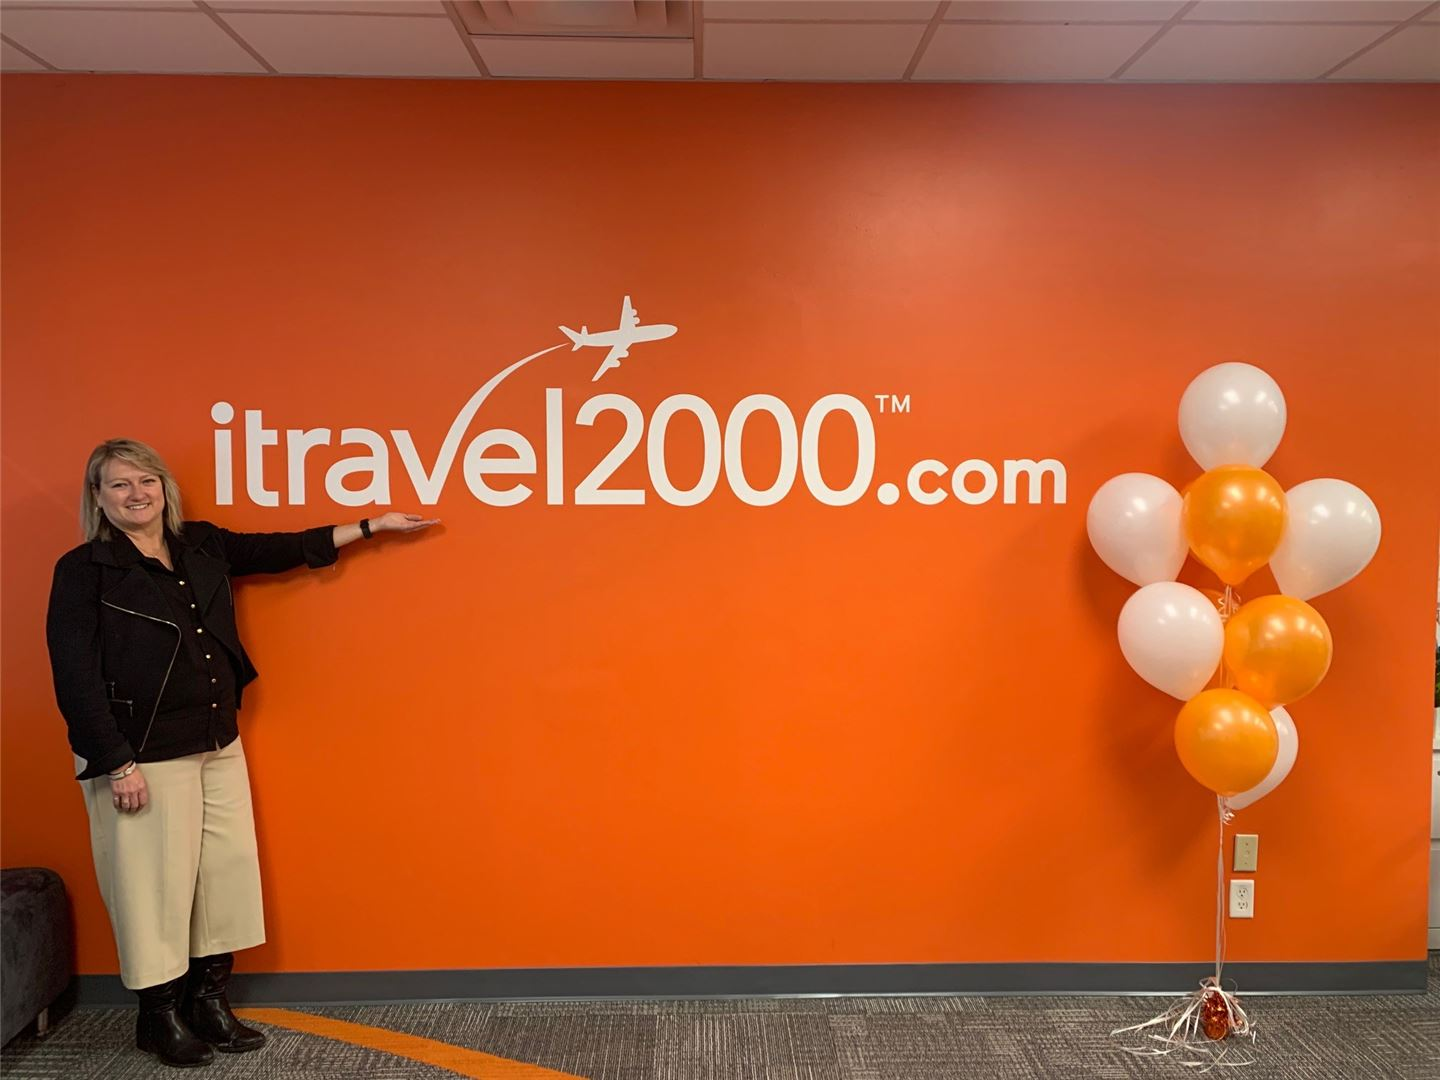 New Evidence Brick And Mortar Travel Agencies Aren't Dead